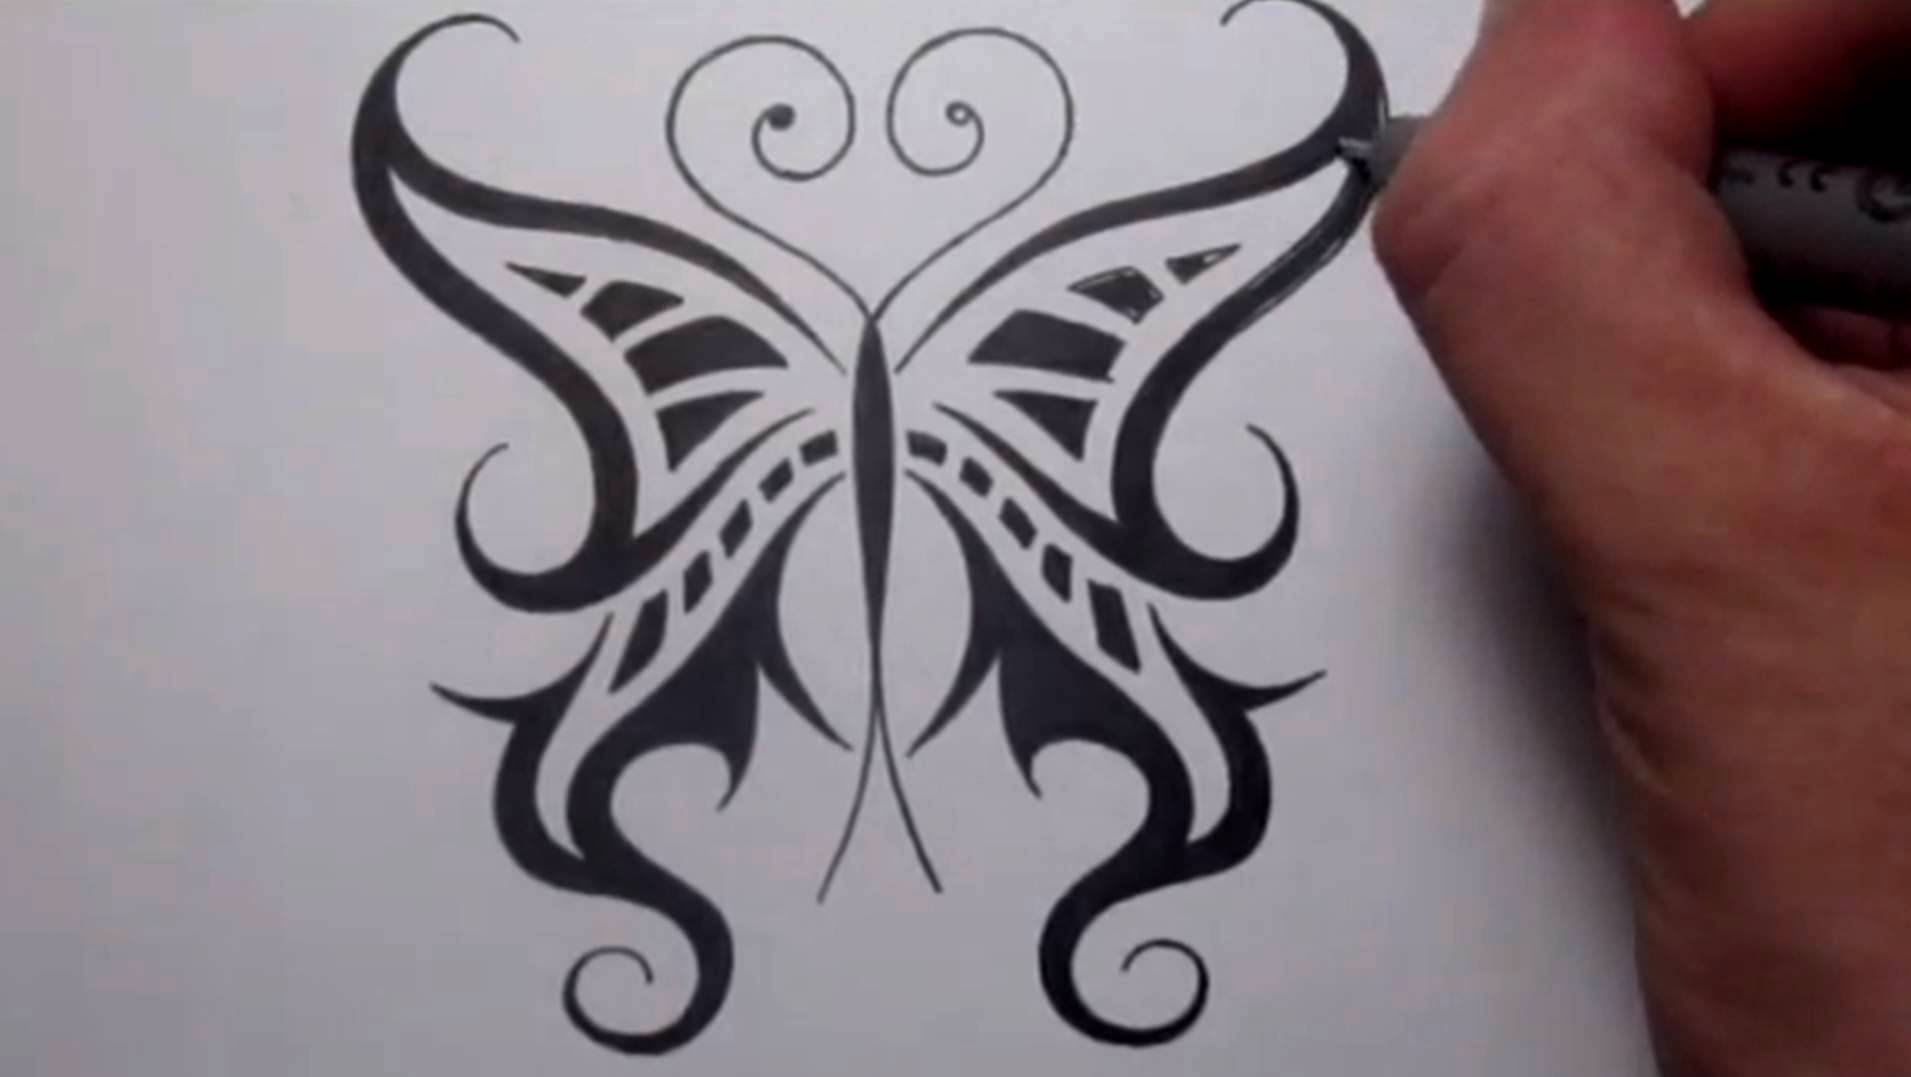 Cool drawing designs for Cool drawing design ideas